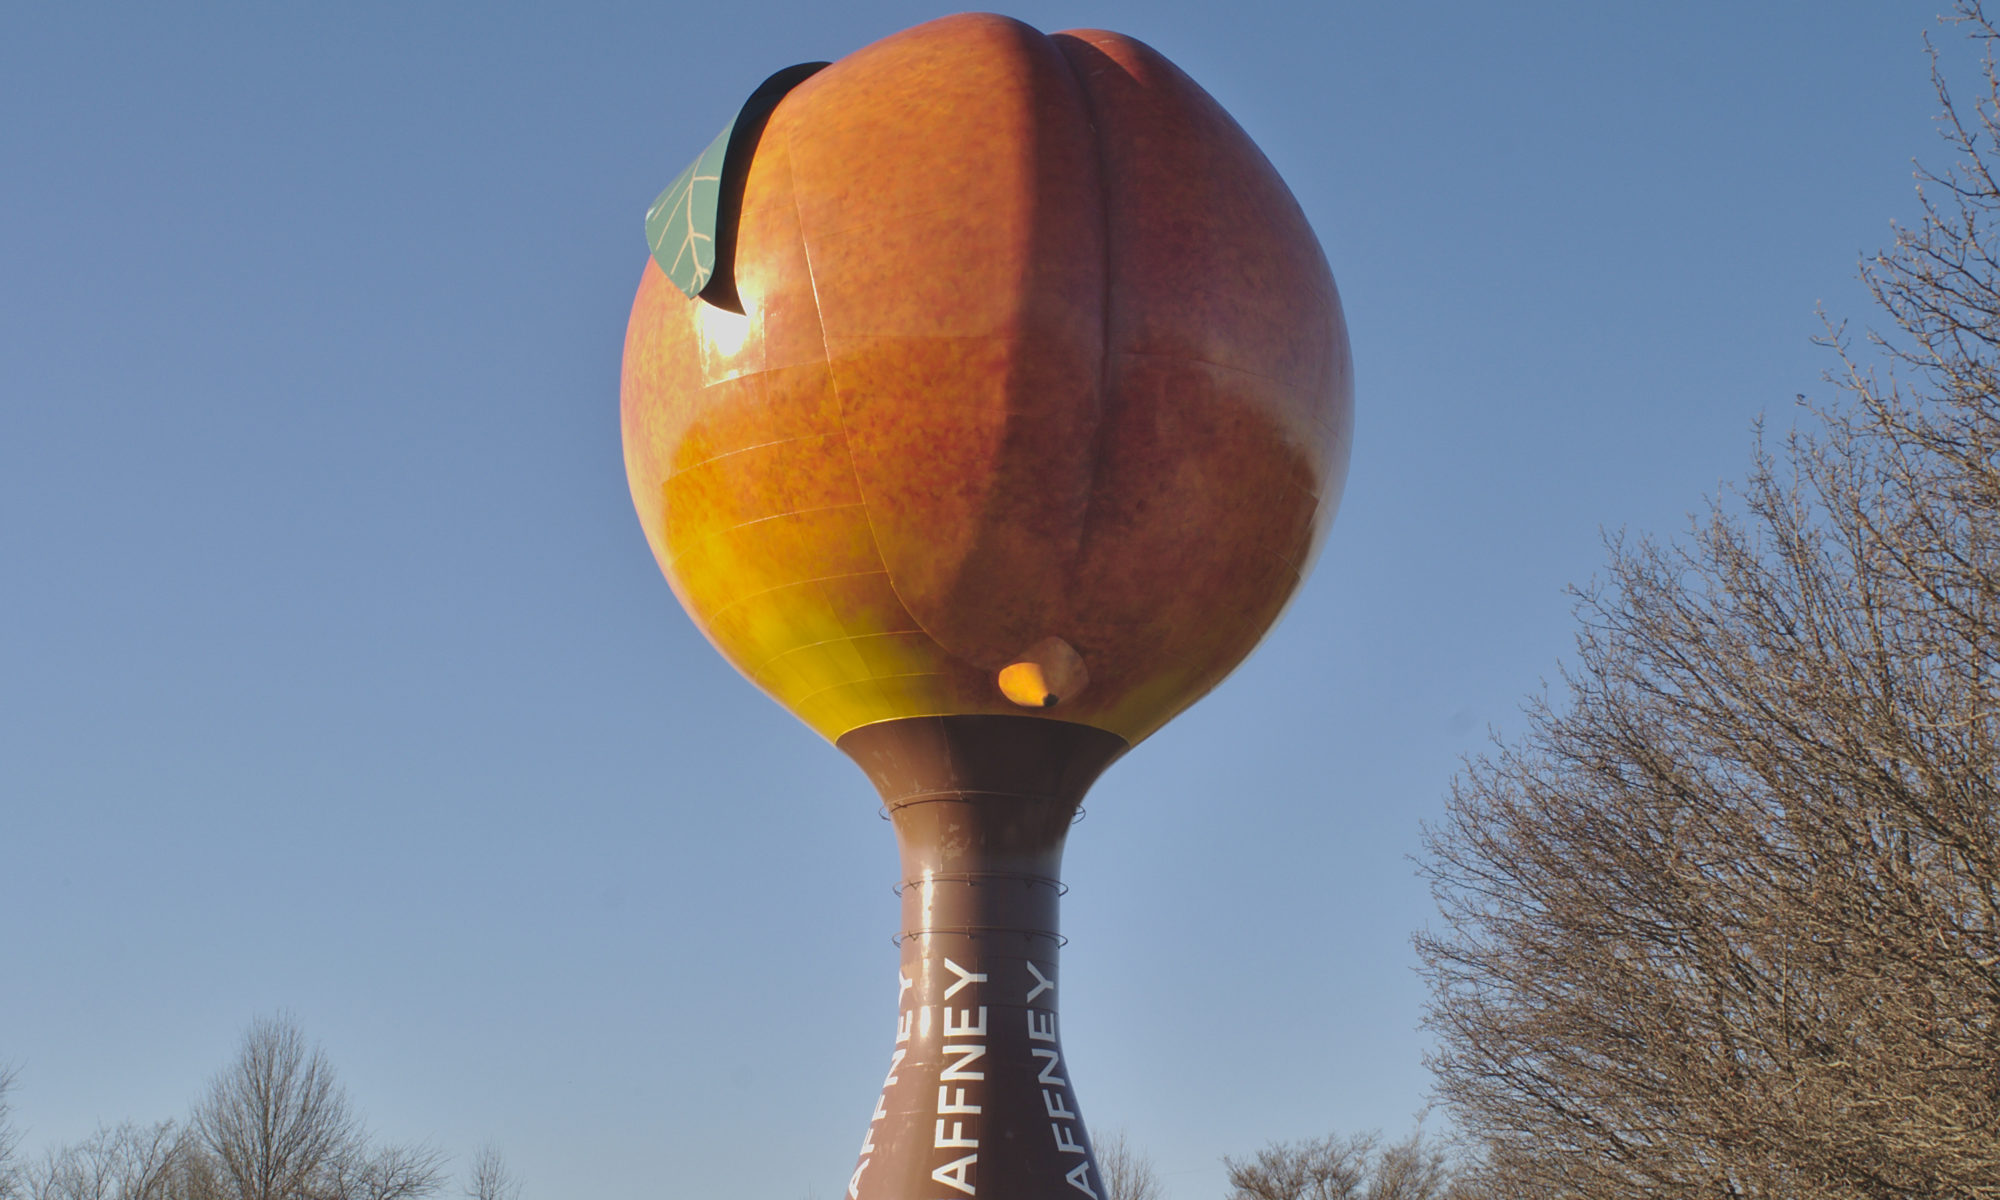 The Peachoid, Gaffney, SC